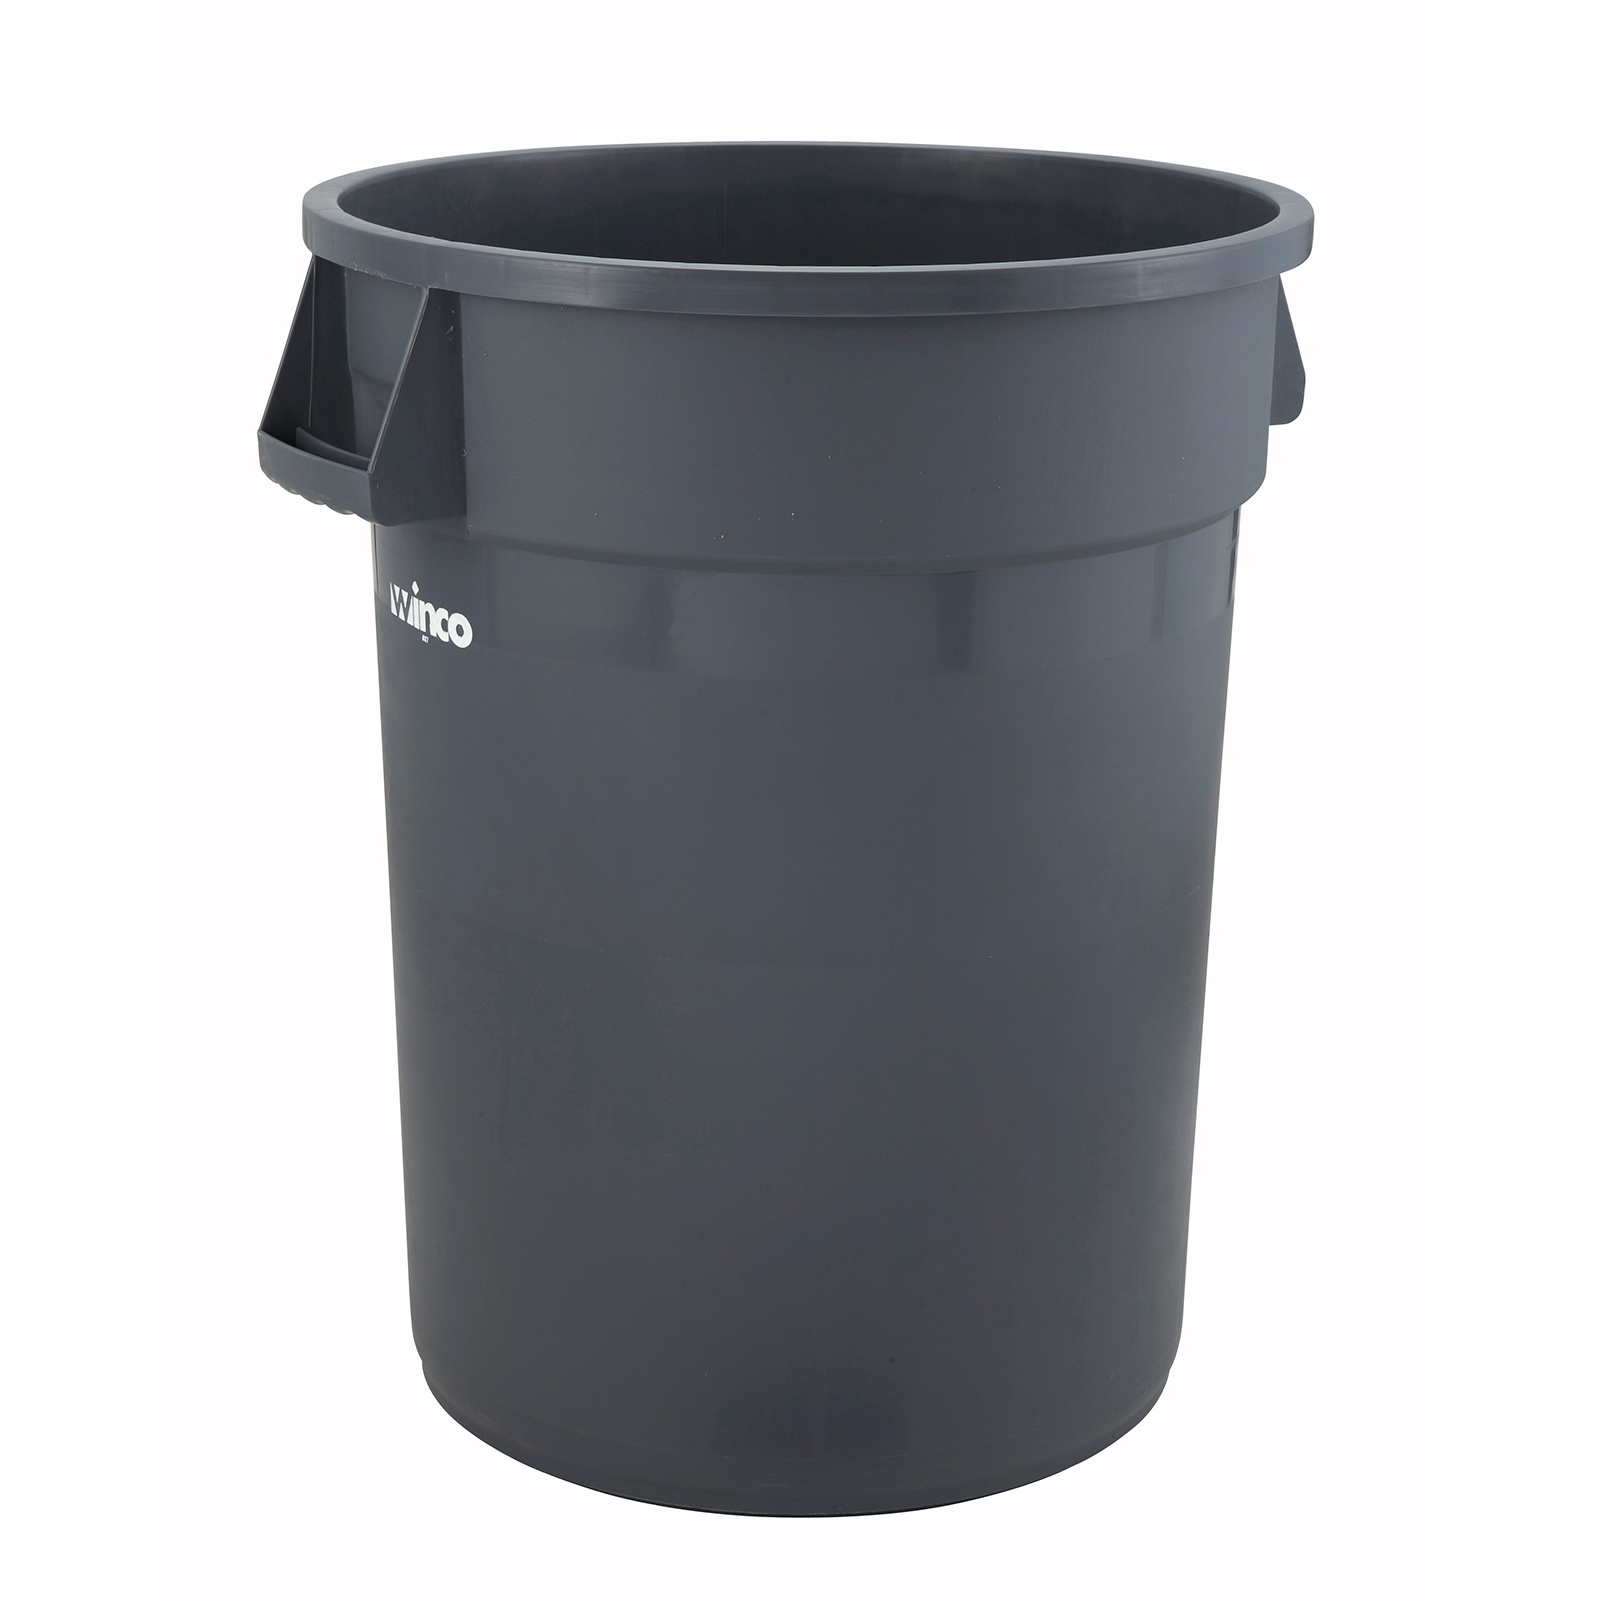 Winco PTC-32G trash can / container, commercial